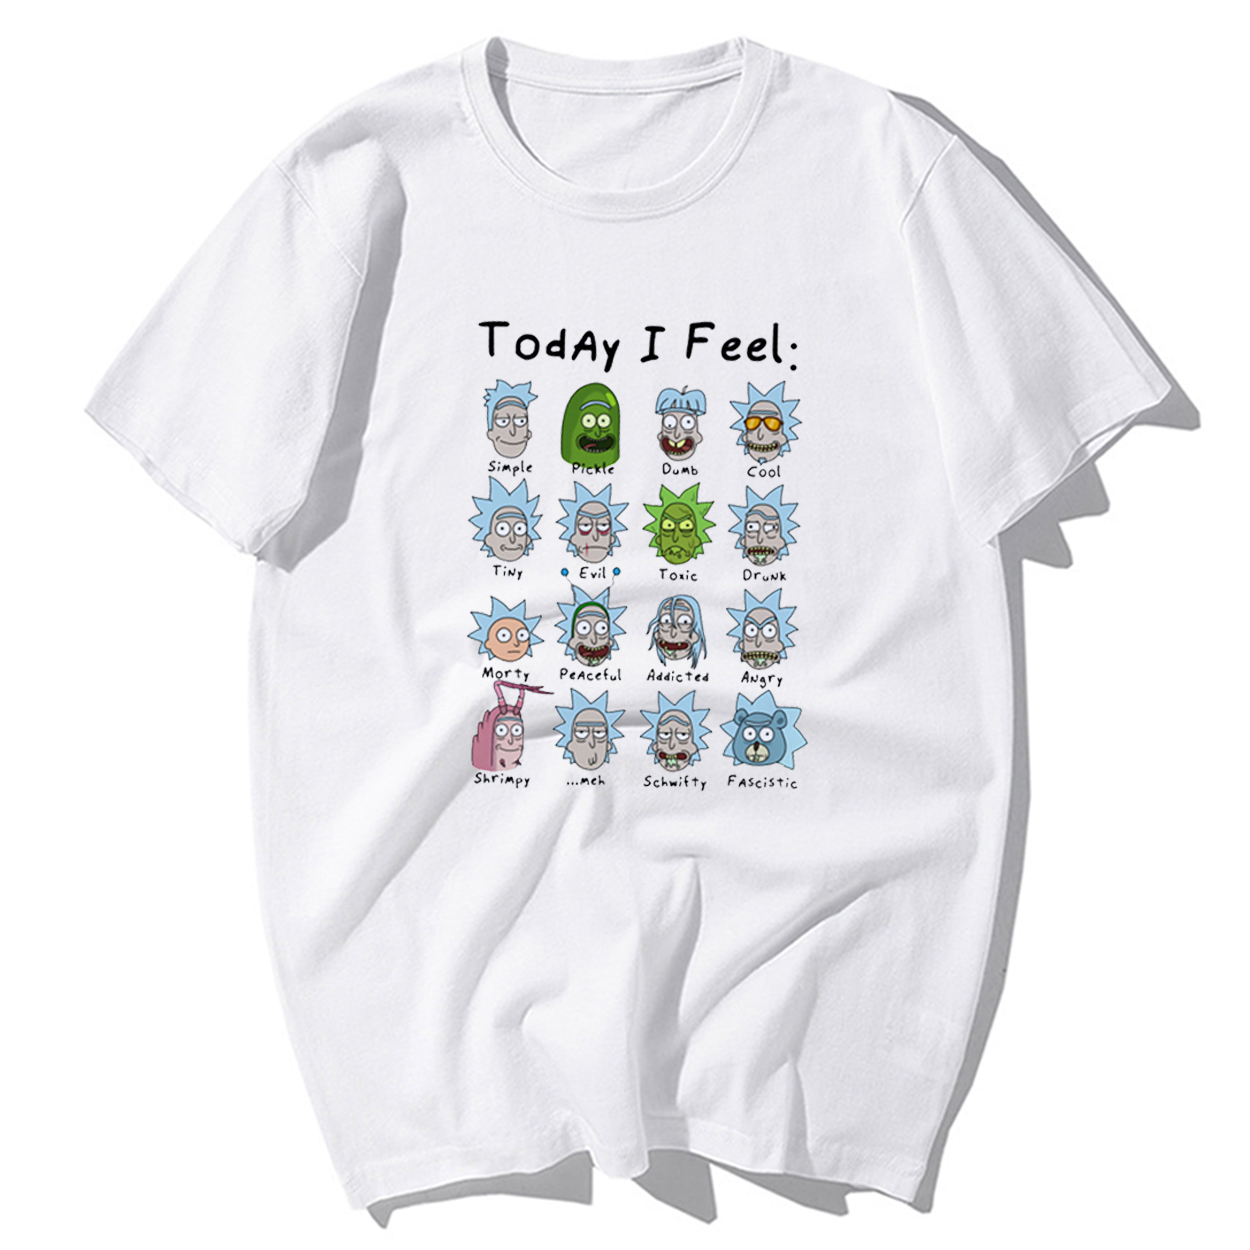 Funny Rick And Morty T Shirt Today I Feel Cool T-shirts Men's High Quality 100% Cotton Short Sleeve Hip Hop Harajuku Tshirt Tops